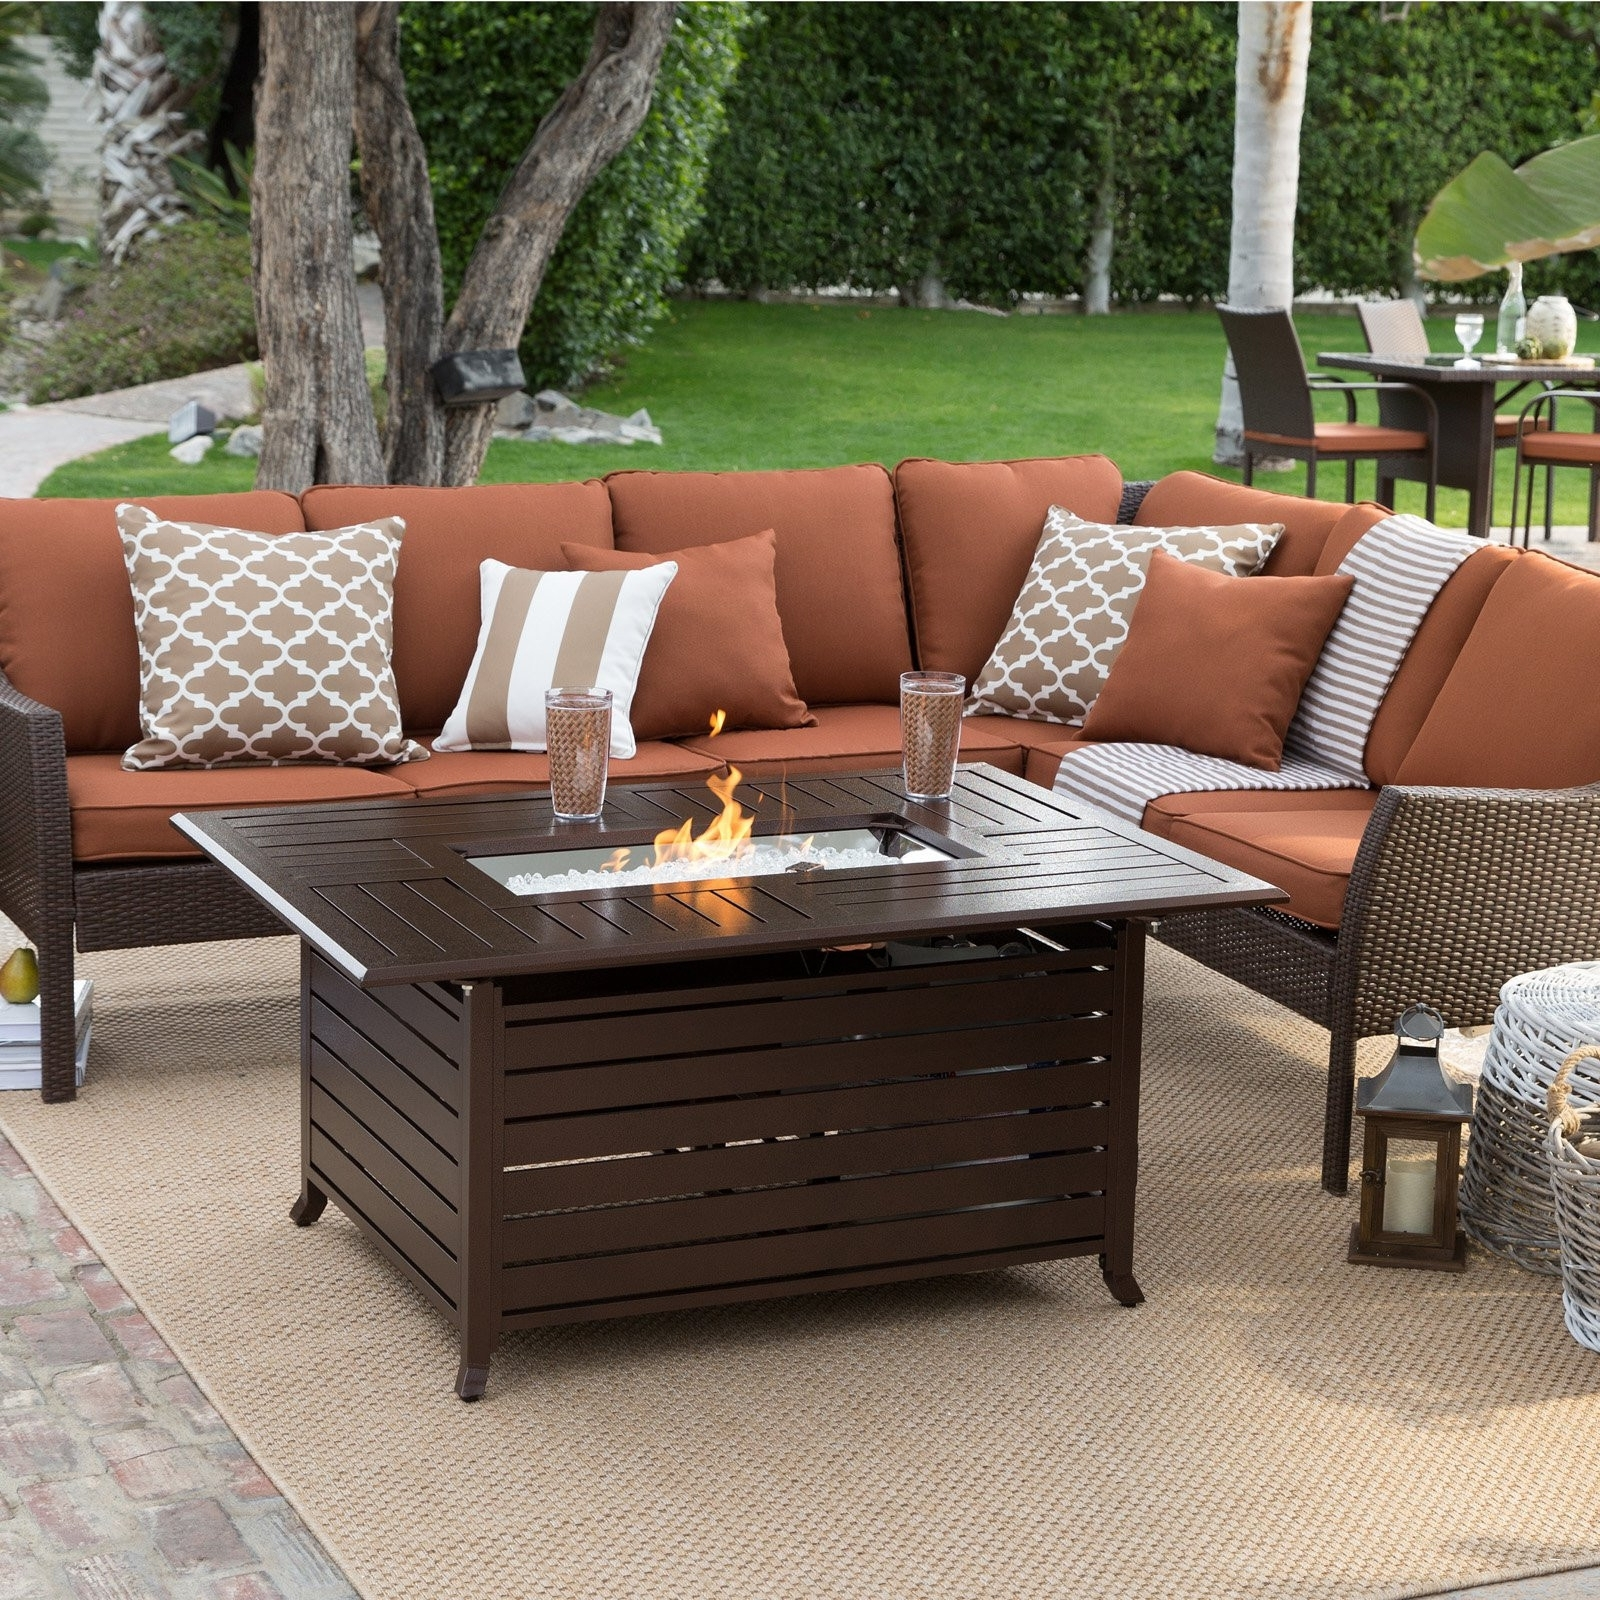 Favorite Patio Conversation Sets Under $500 For 30 The Best Outdoor Patio Set With Fire Pit Scheme – Bakken Design Build (View 9 of 20)